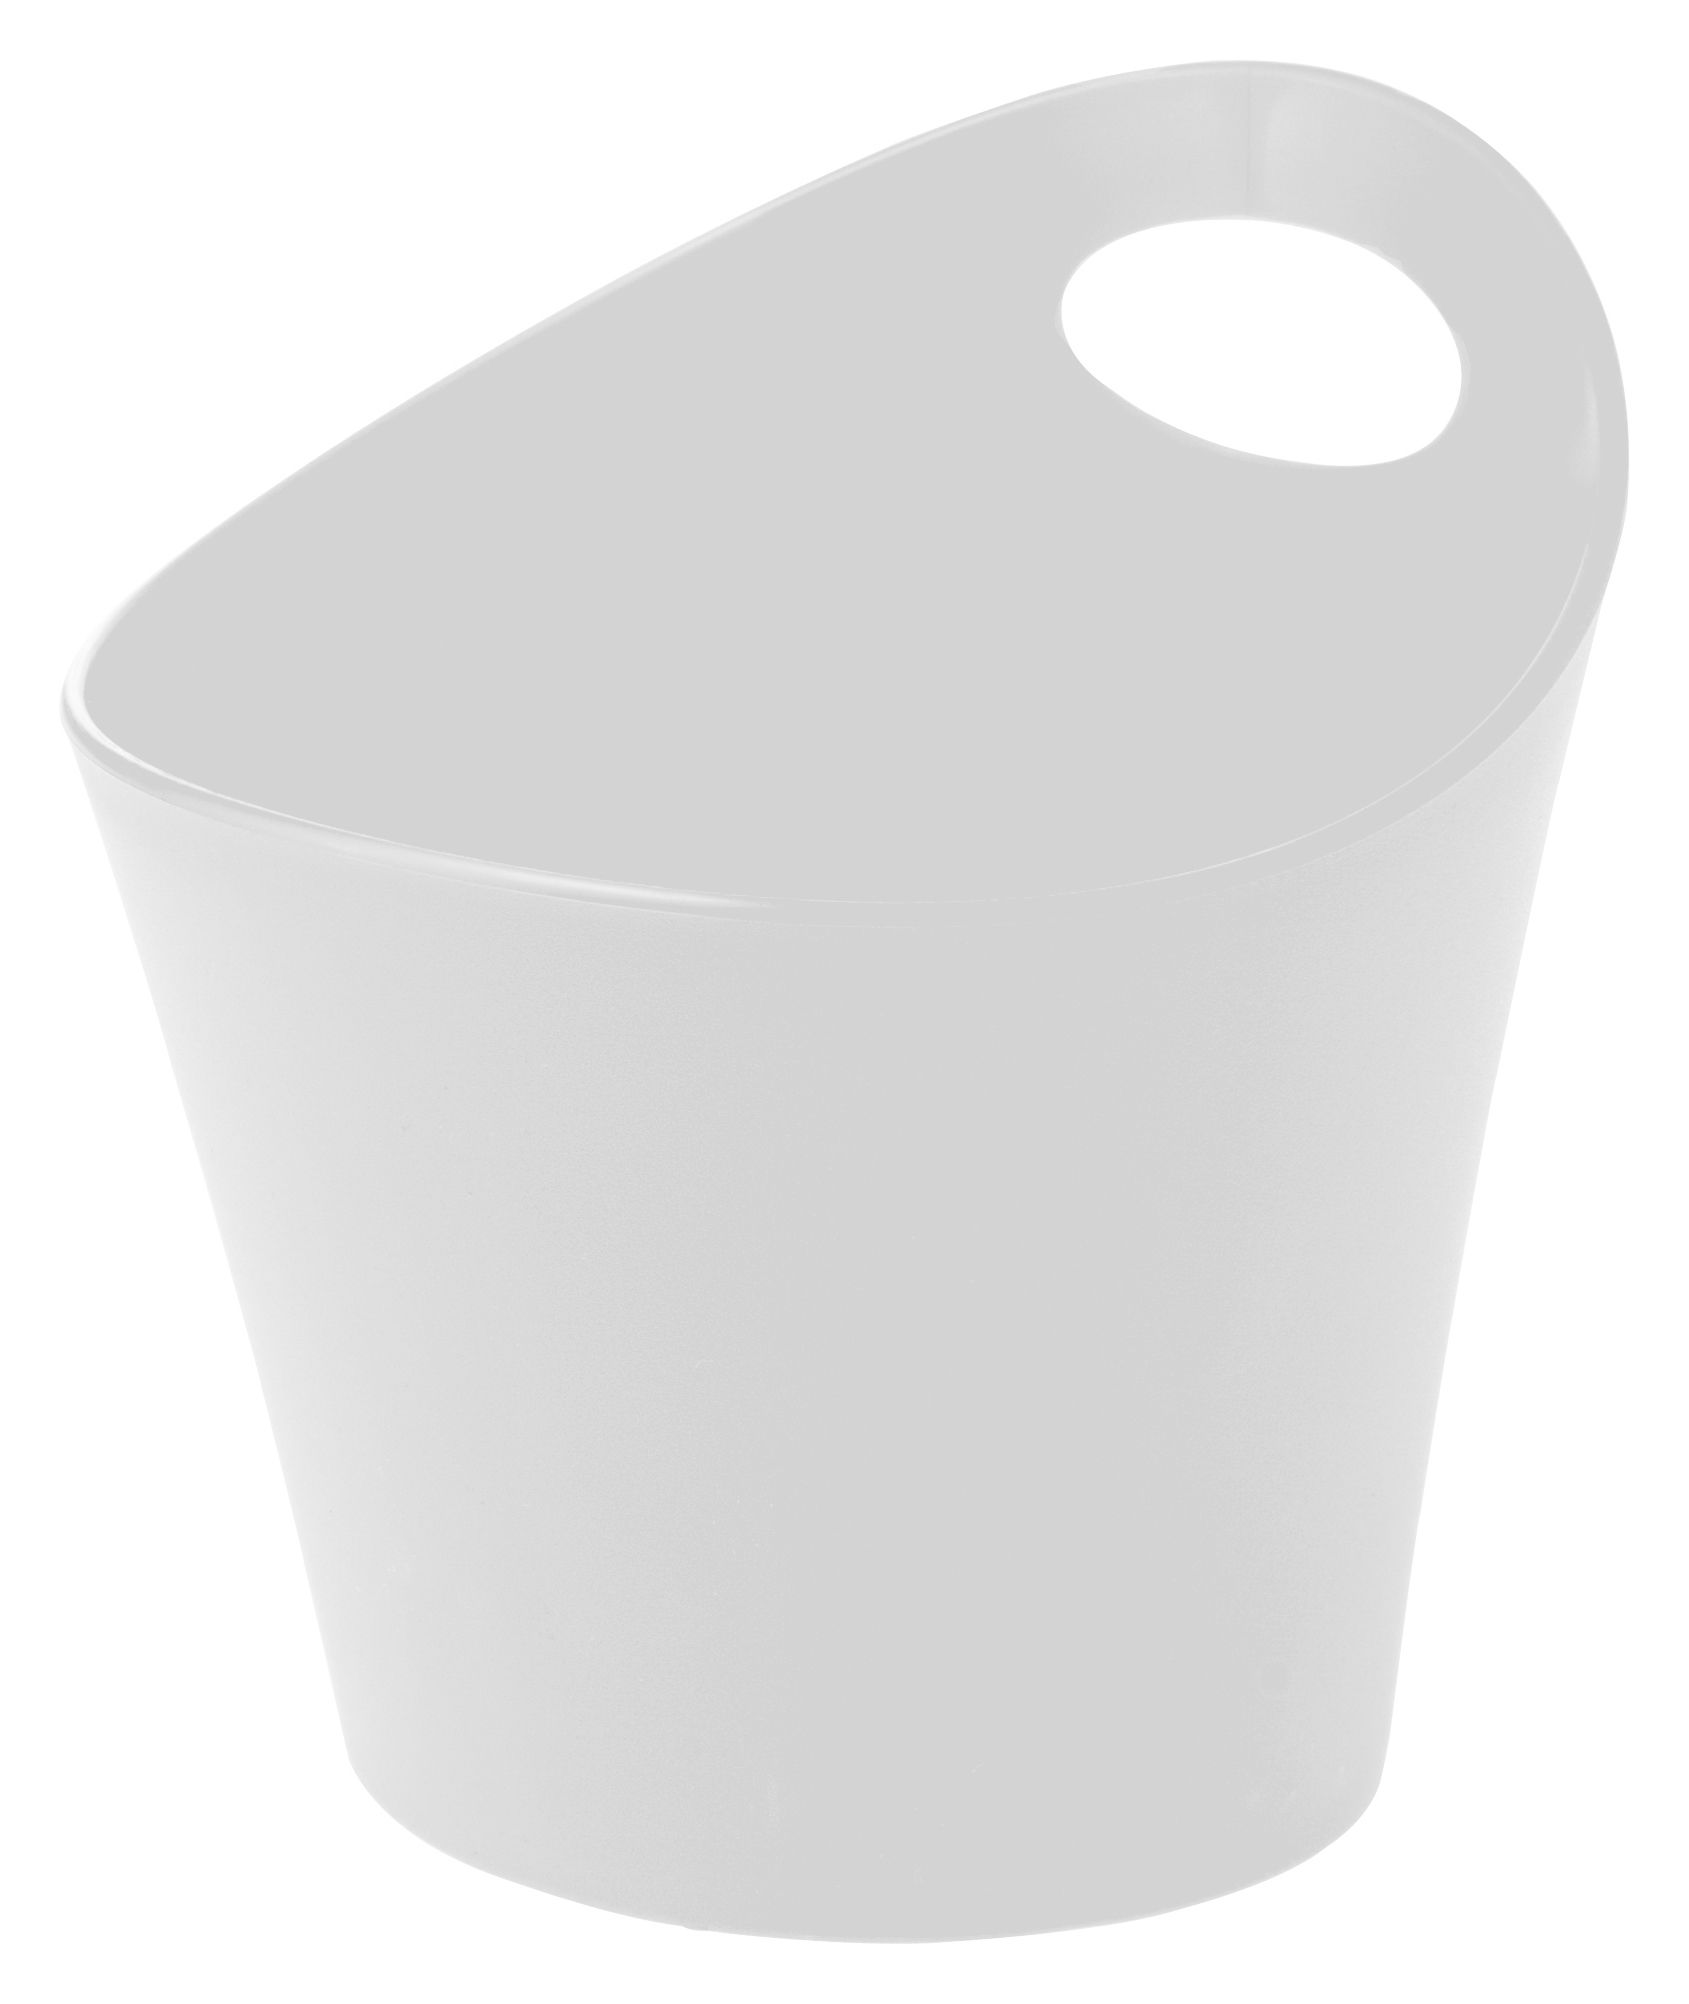 Decoration - For bathroom - Pottichelli Pot by Koziol - White - PMMA